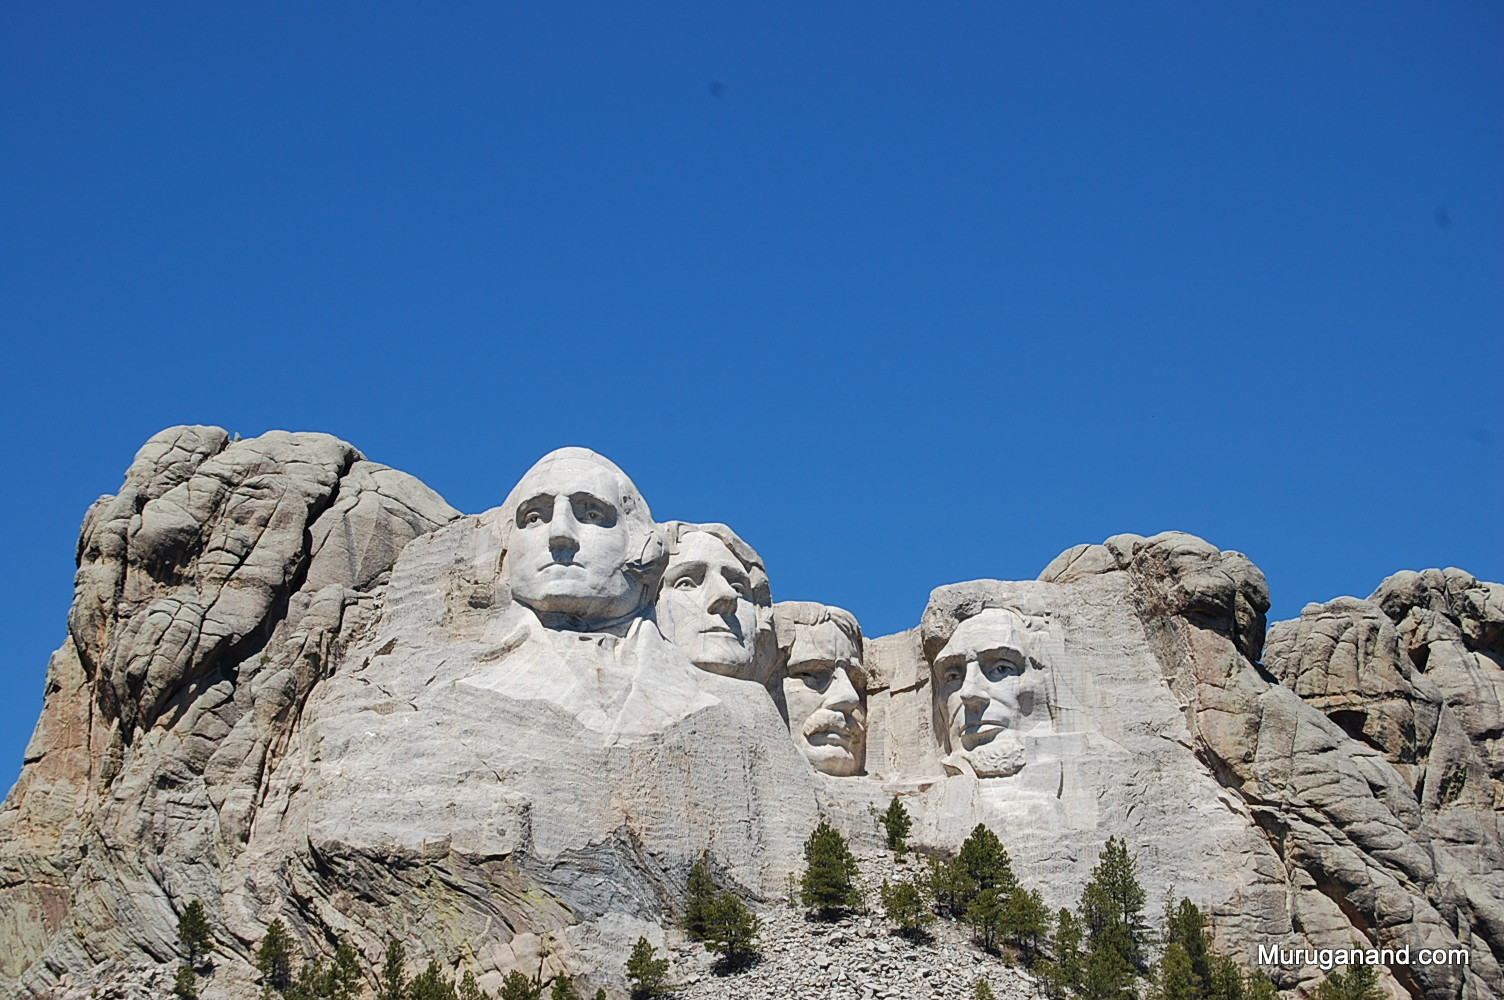 Each face is 60 ft tall and they are at an altitude of 5500 ft.